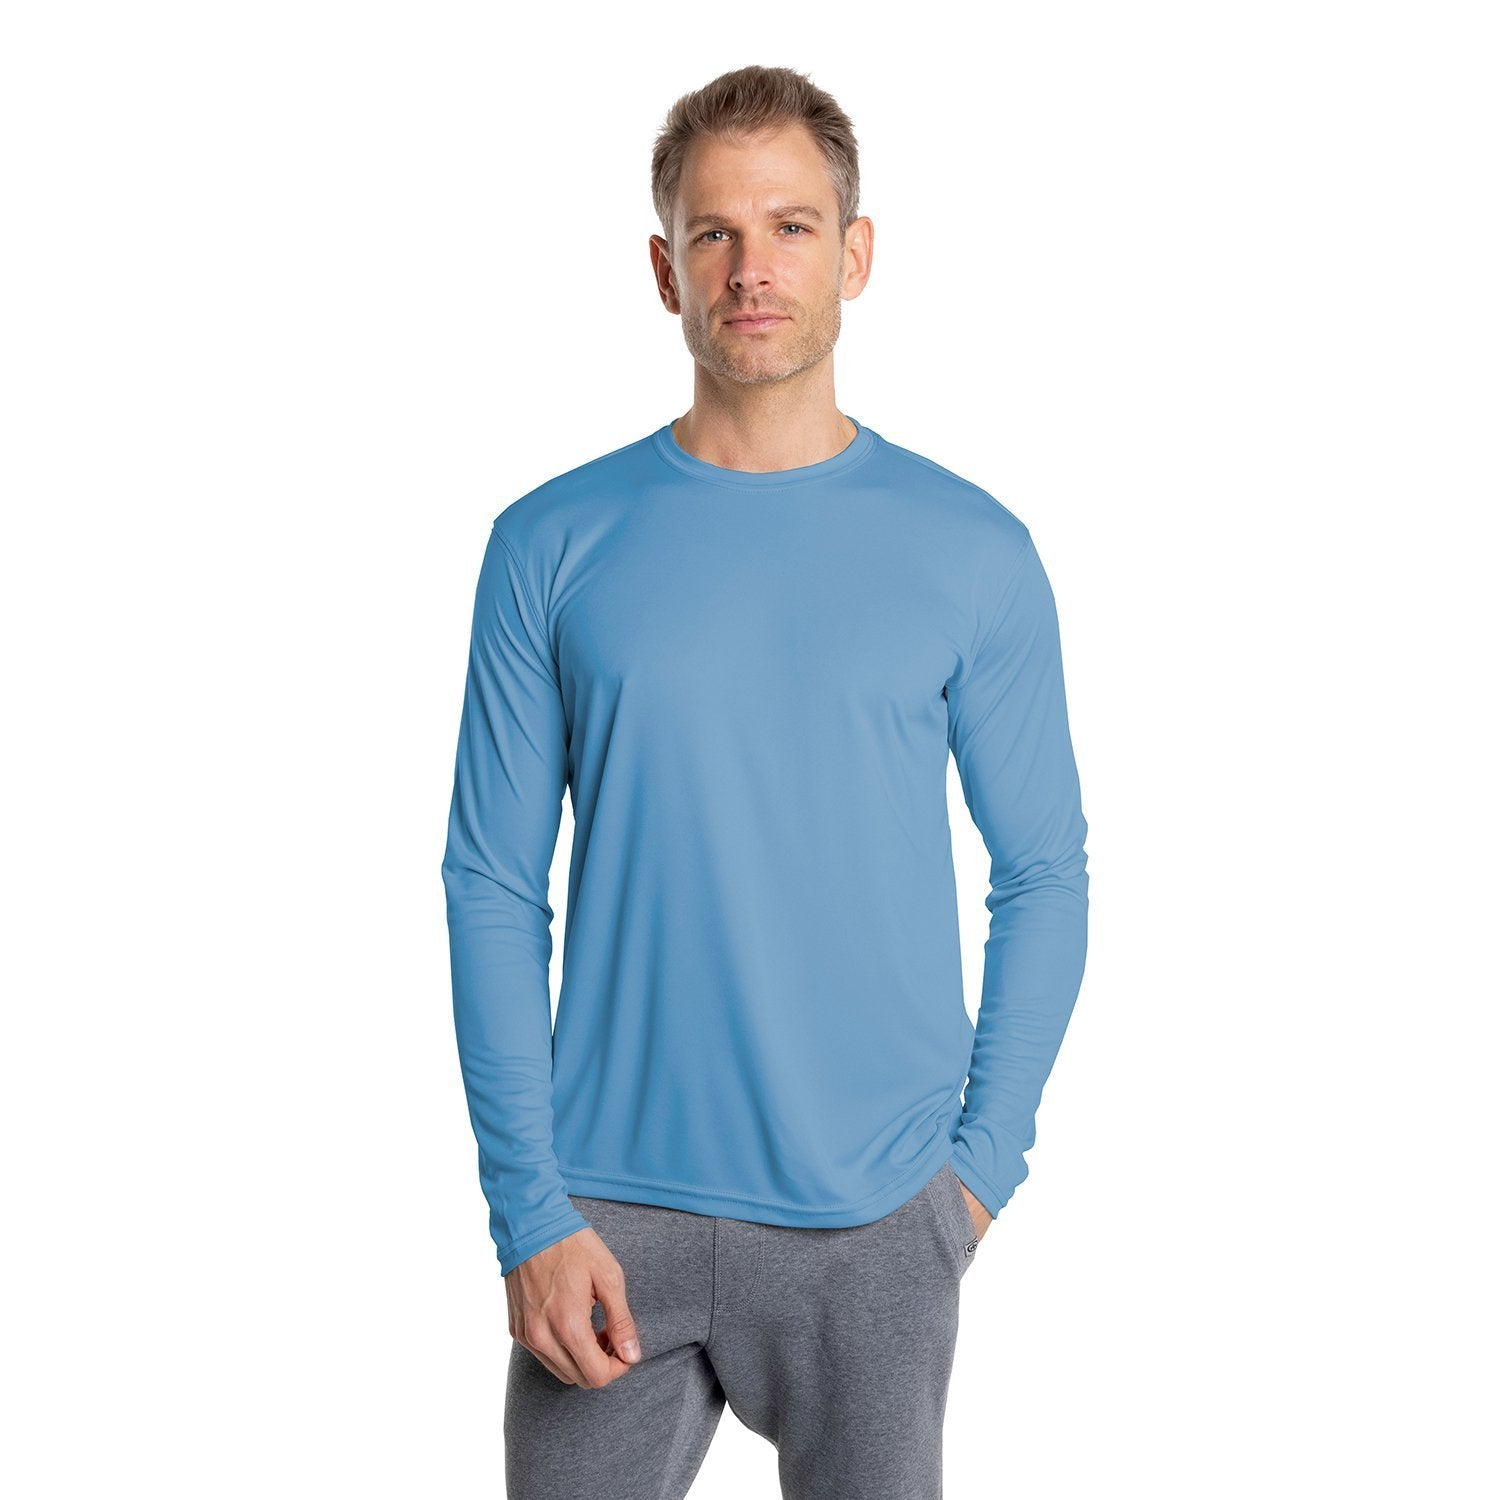 M700CB Solar Long Sleeve - Columbia Blue